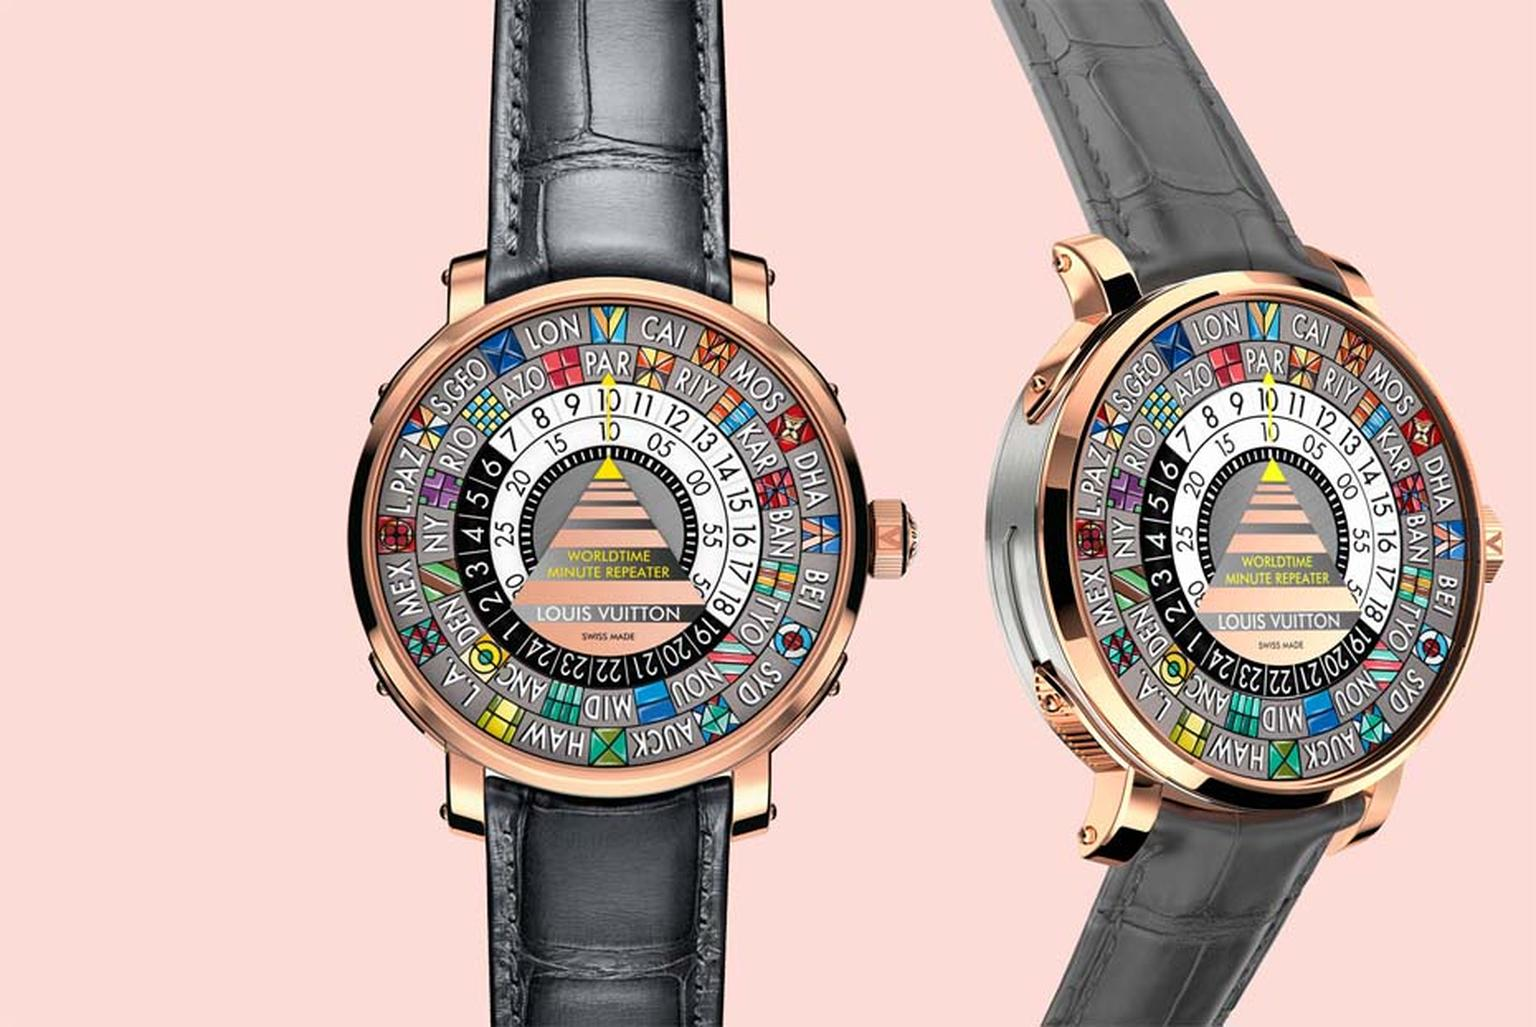 Louis Vuitton's new Escale Worldtime Minute Repeater chimes the home time on demand and gives you local time without the aid of hands. A remarkable watch, both mechanically and aesthetically, made by Louis Vuitton's Swiss watchmaking manufacture La Fabriq